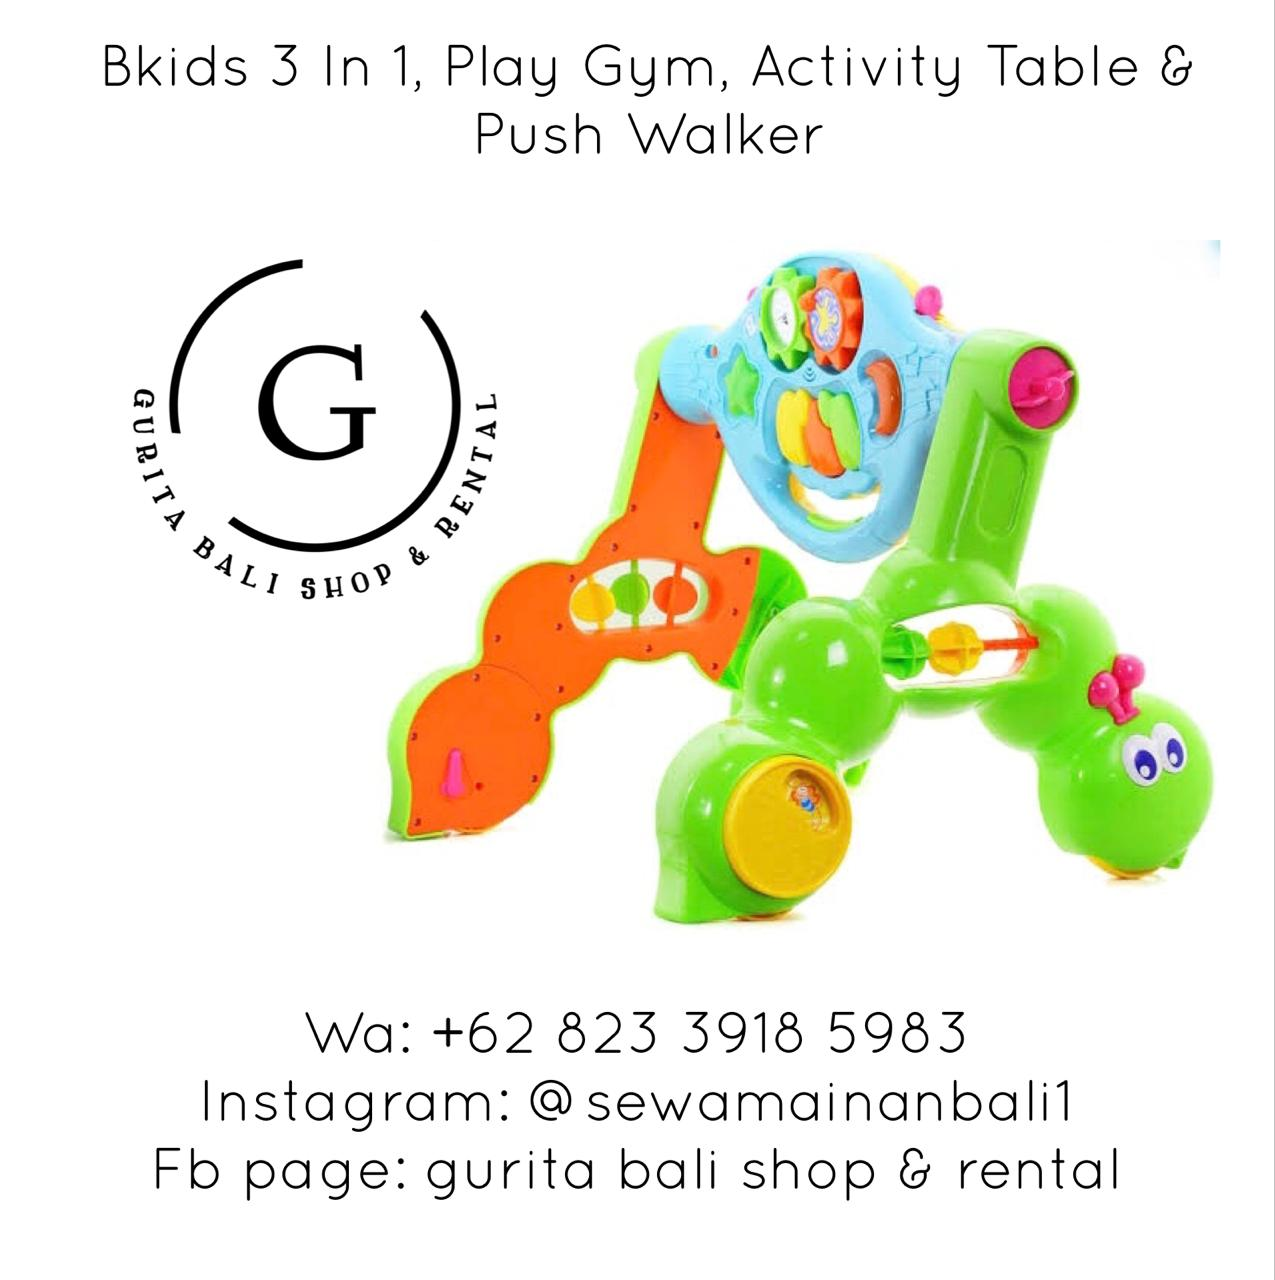 B KIDS 3 IN 1 PLAY GYM